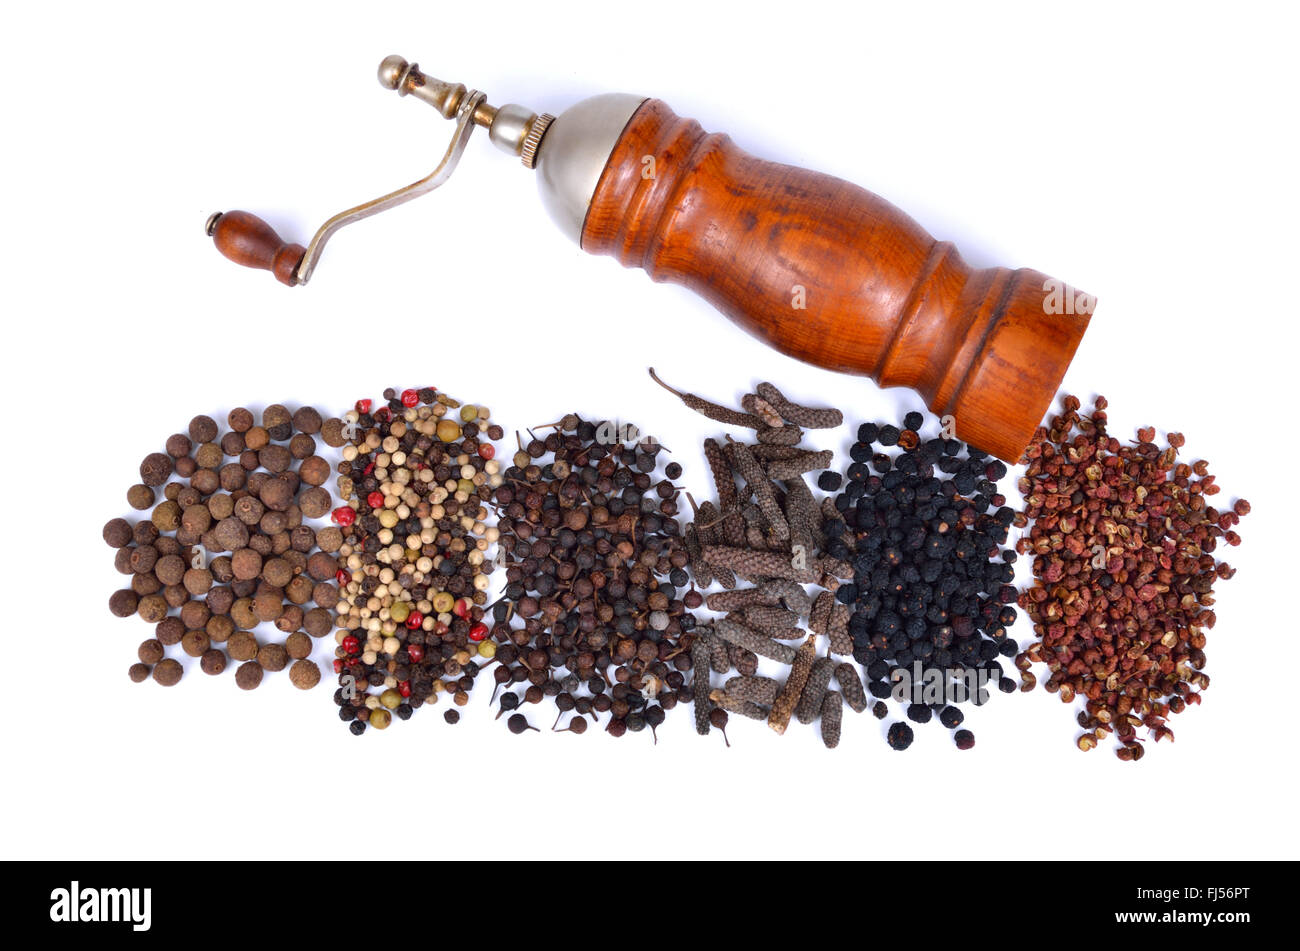 pepper mill with different kinds of pepper: pimento, coloured pepper, cubeb pepper, long pepper; Tasmanian pepper - Stock Image